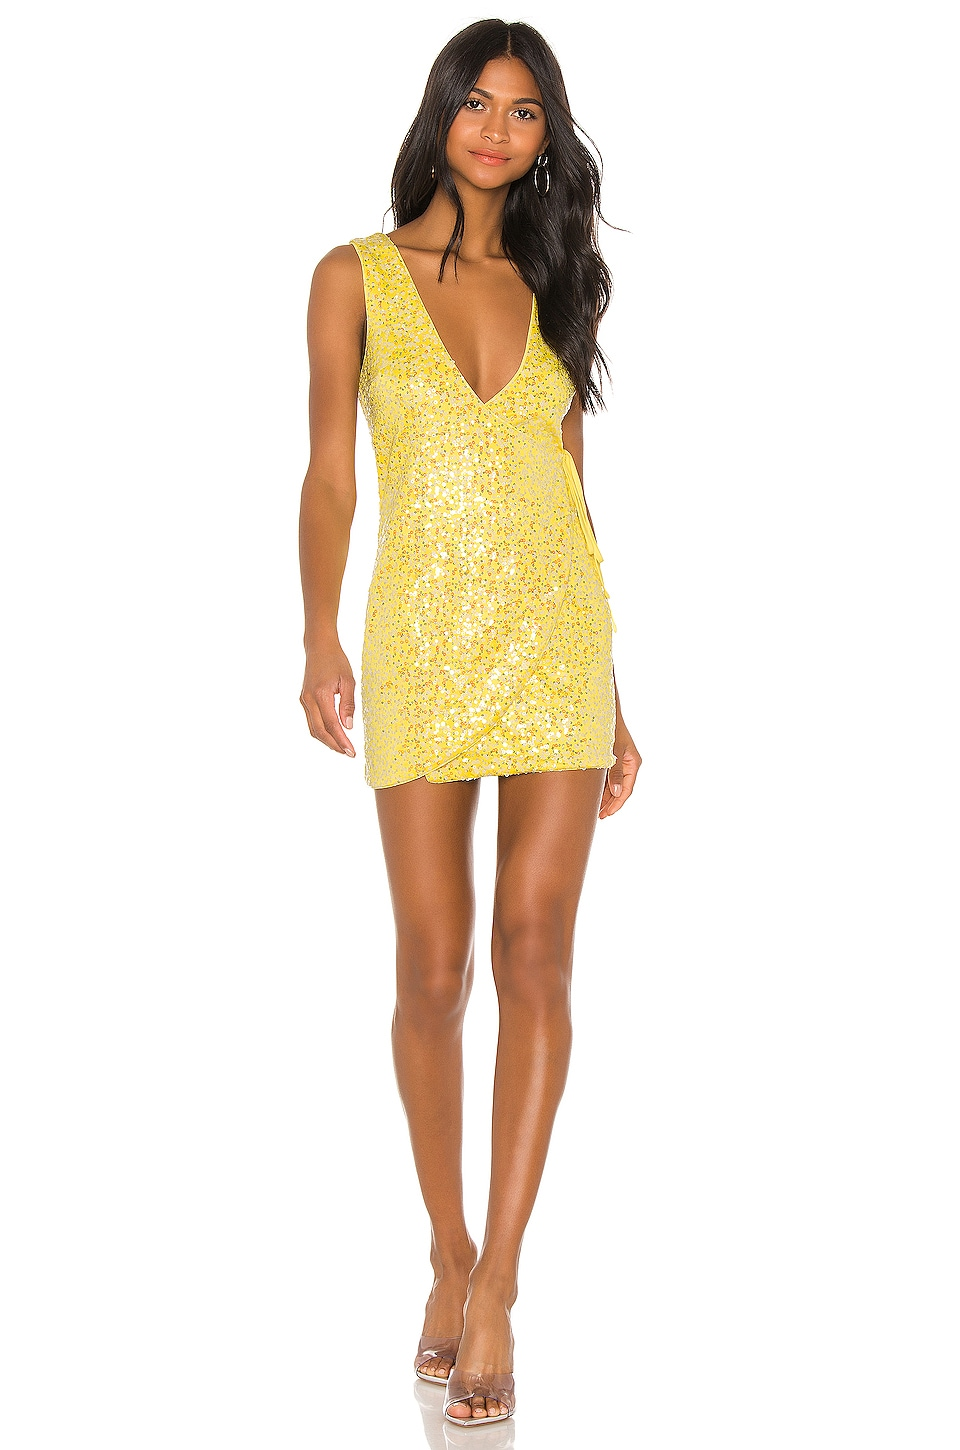 h:ours Broadway Mini Dress in Iridescent Canary